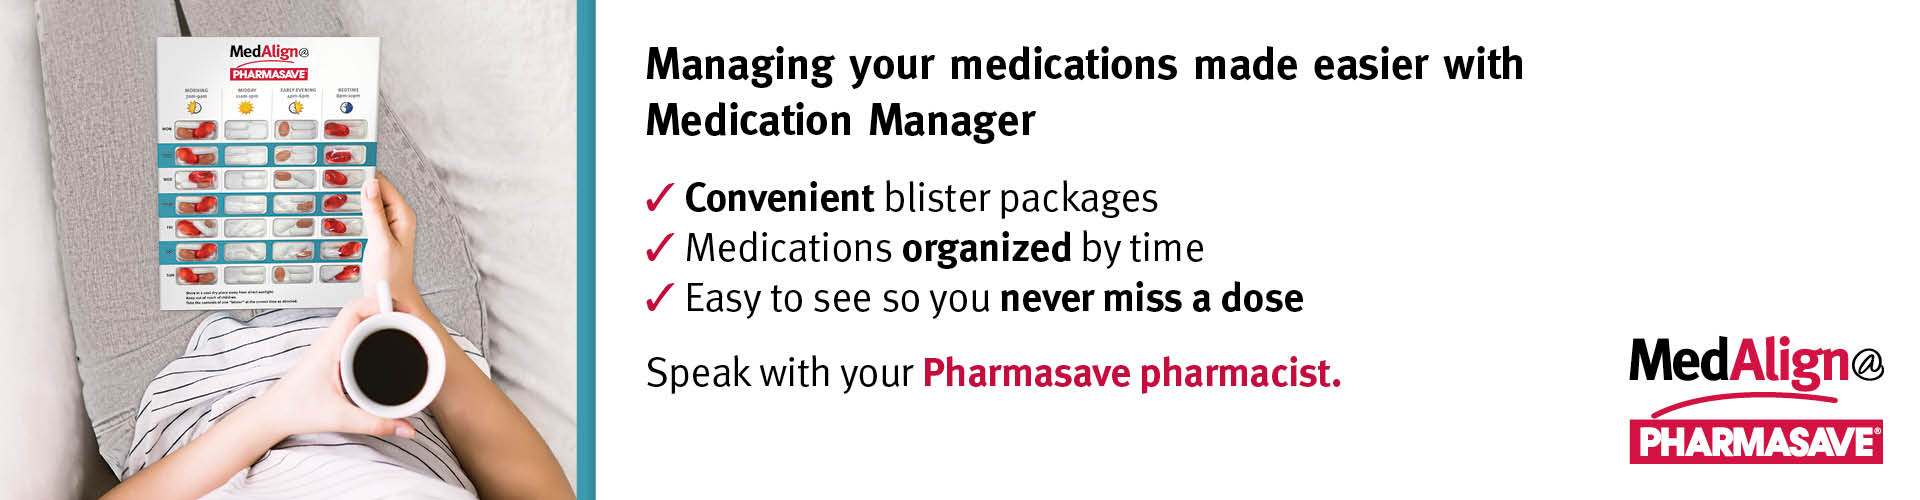 Speak with your pharmacist about MedManager